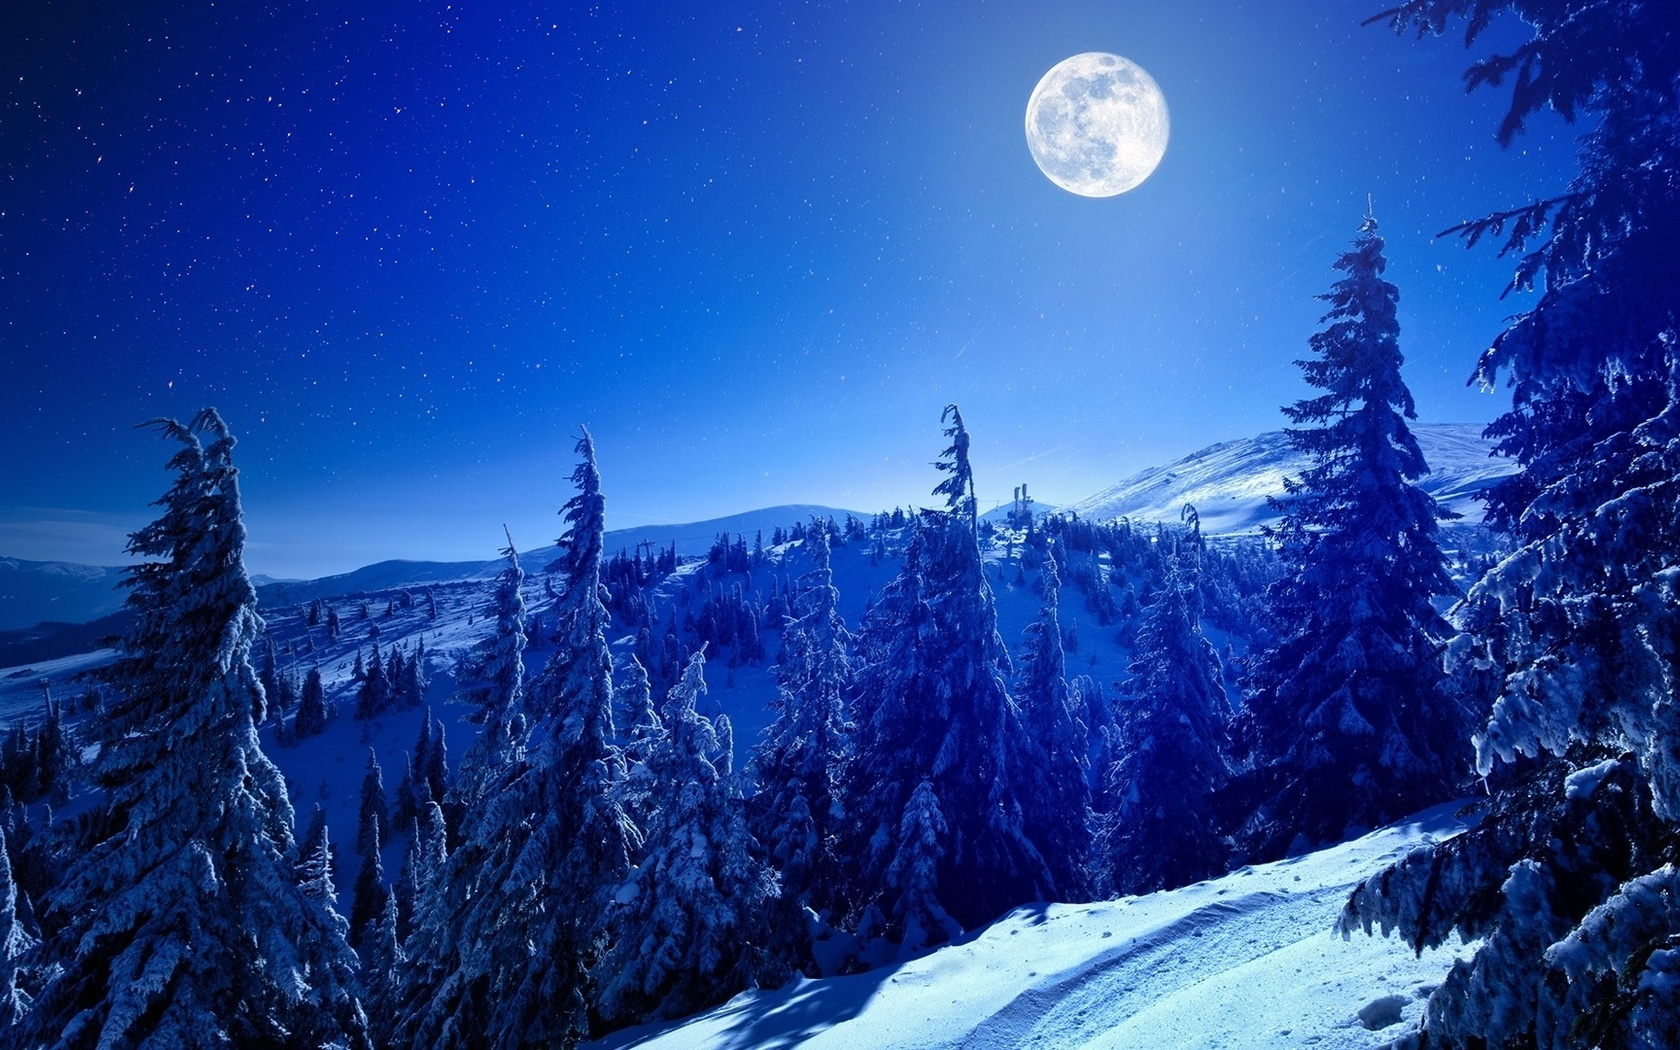 landscape, nature, mountains, forest, night, moon, snow